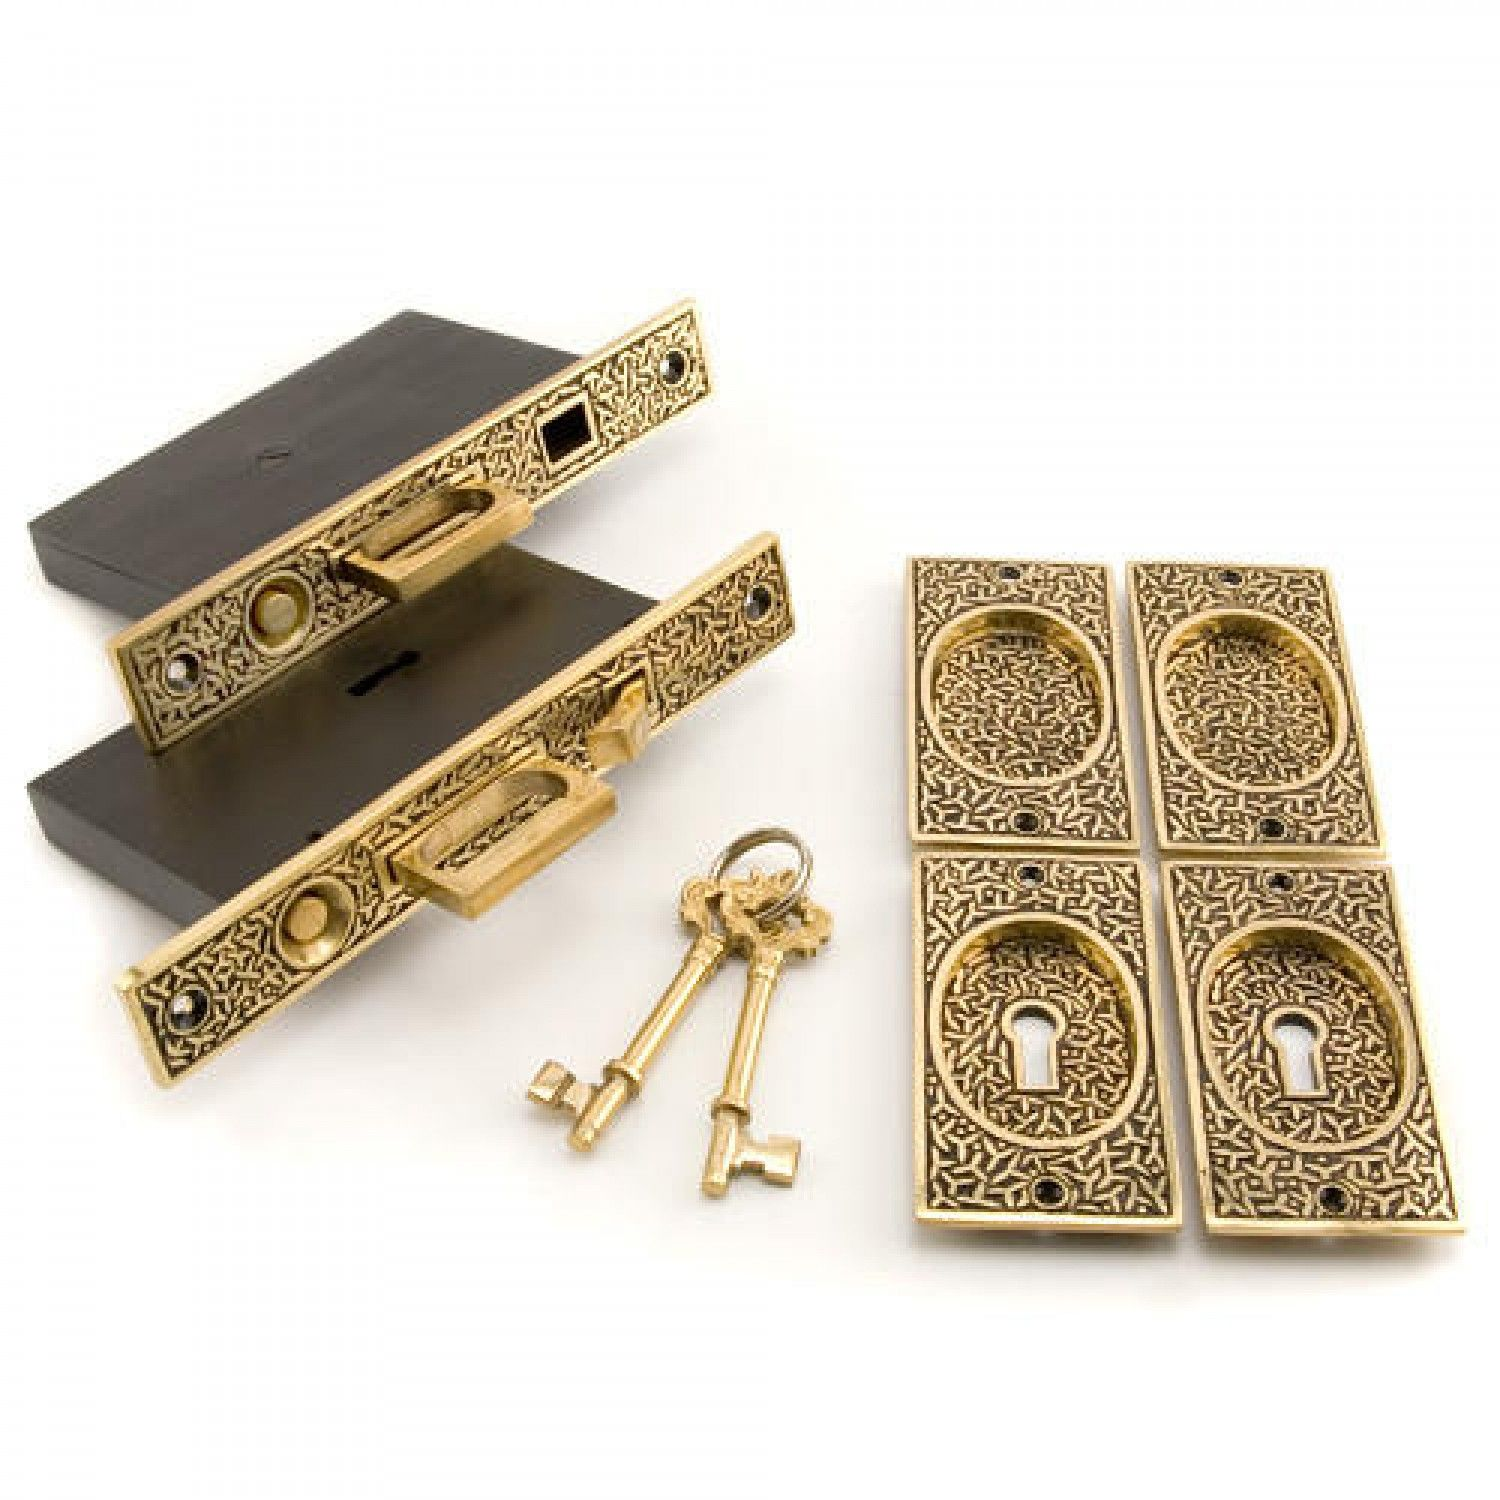 Rice Pattern Double Pocket Door Mortise Lock Privacy Blackened